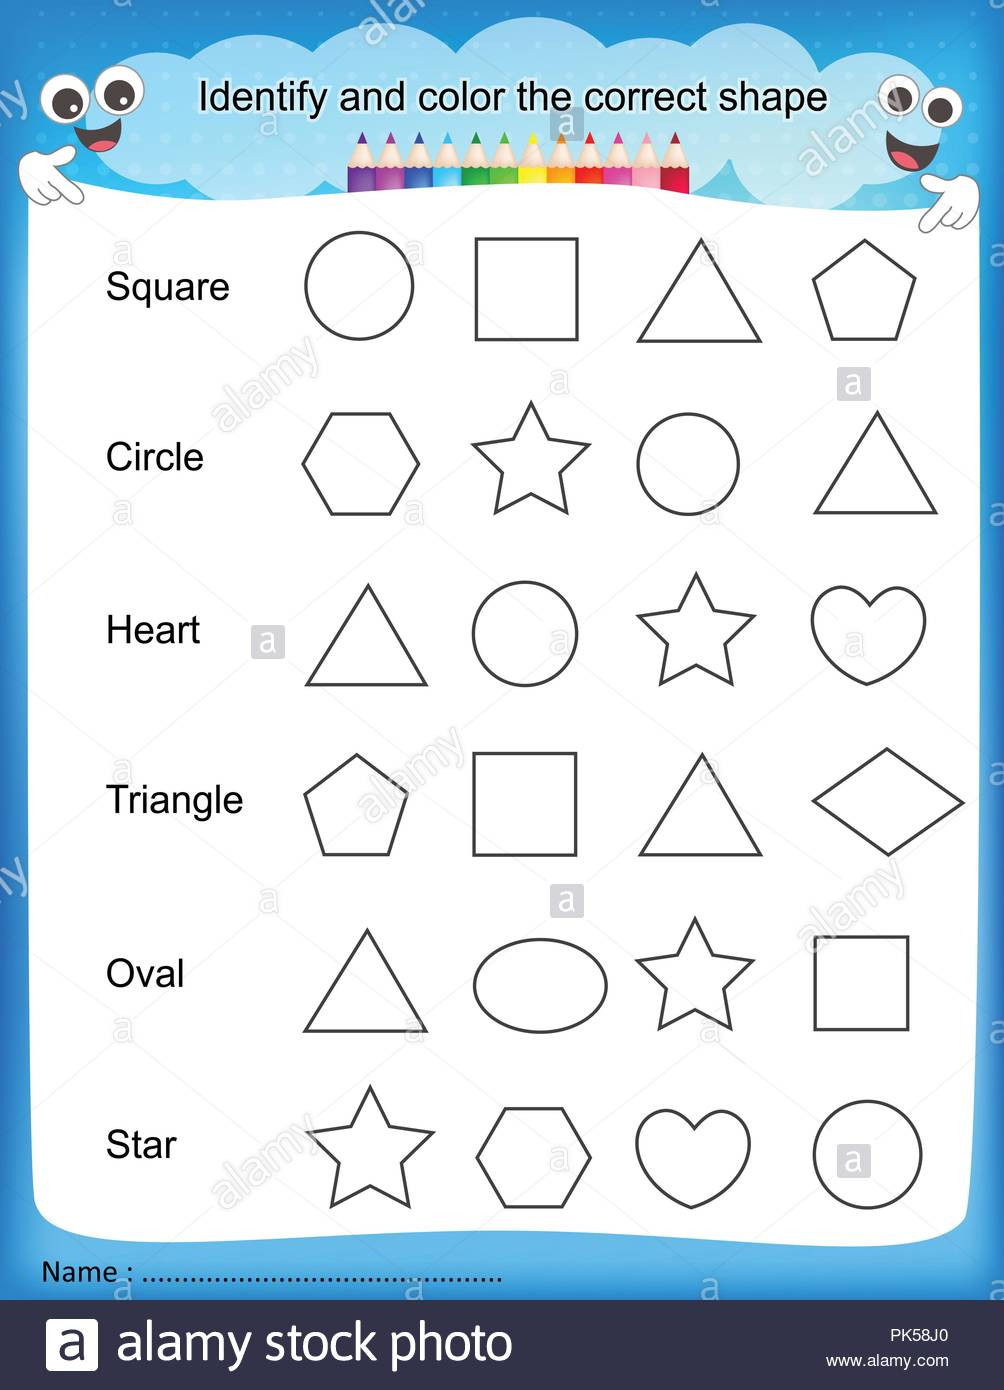 Identify Shapes Worksheet Kindergarten Identify and Color the Correct Shape Colorful Printable Kids